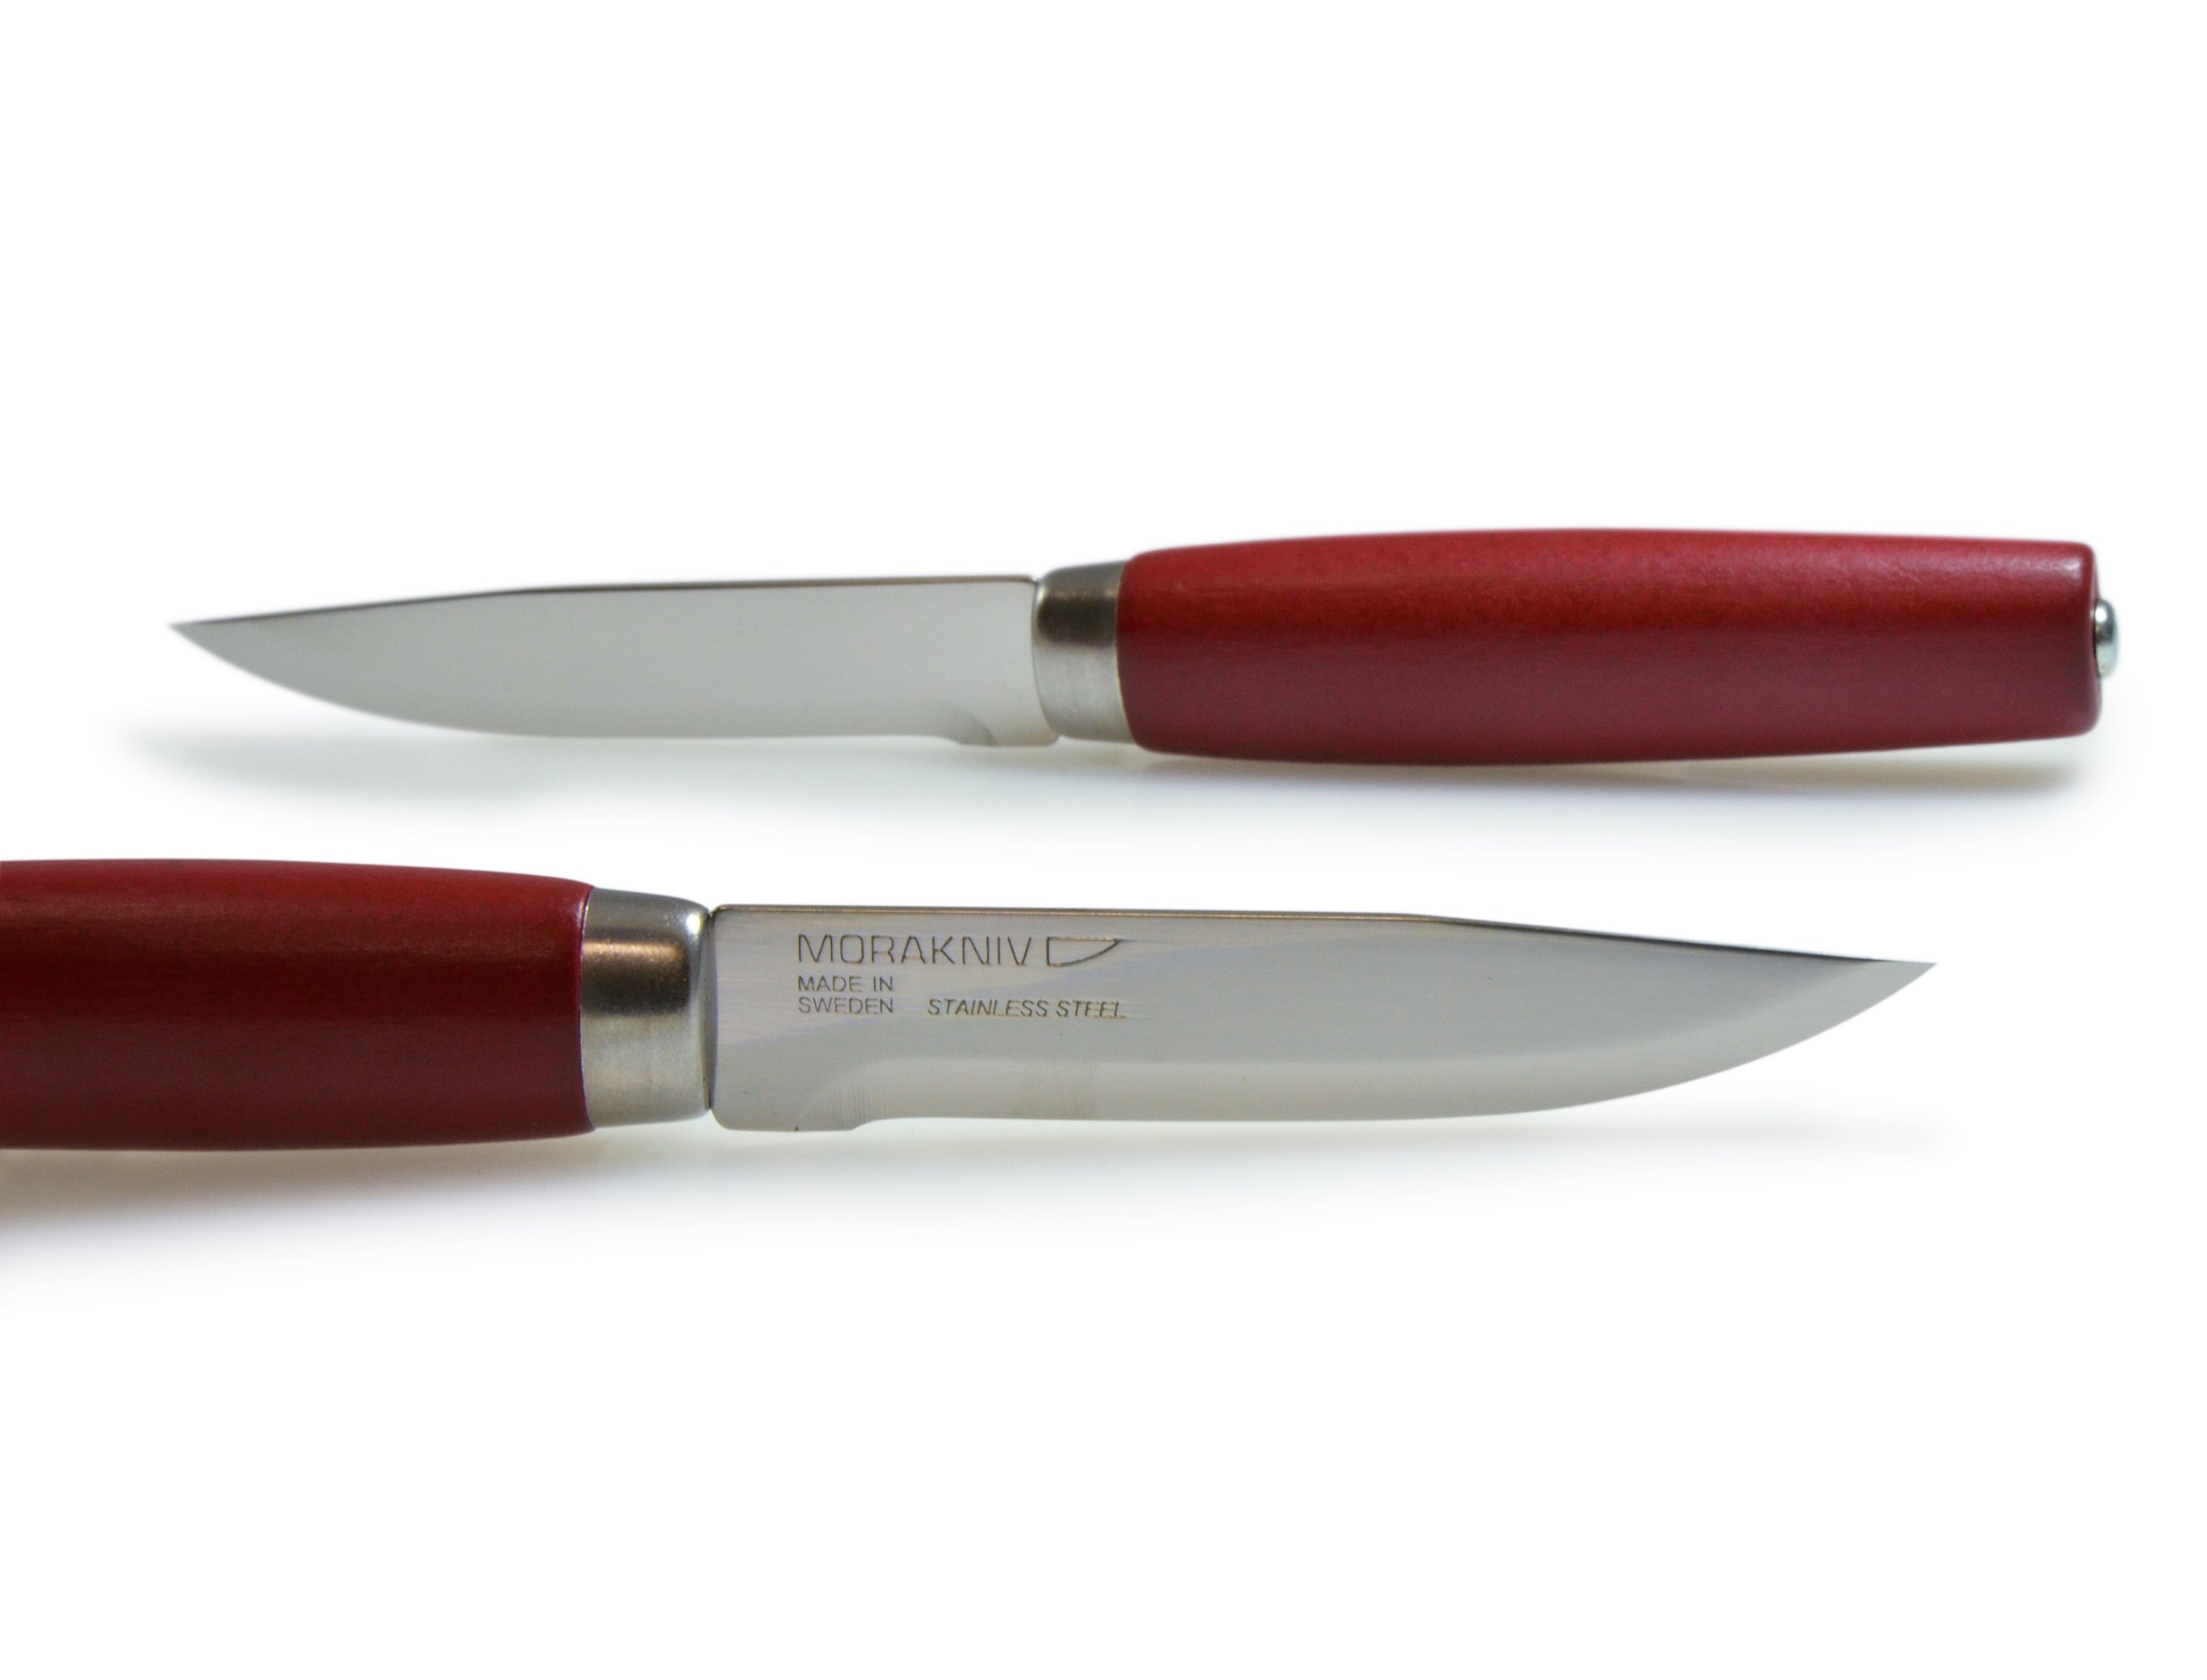 Frosts by Mora of Sweden Classic Steak Knife with 4.2-Inch Stainless Steel Blade and Red Birch Handle (Gift Set of 2)